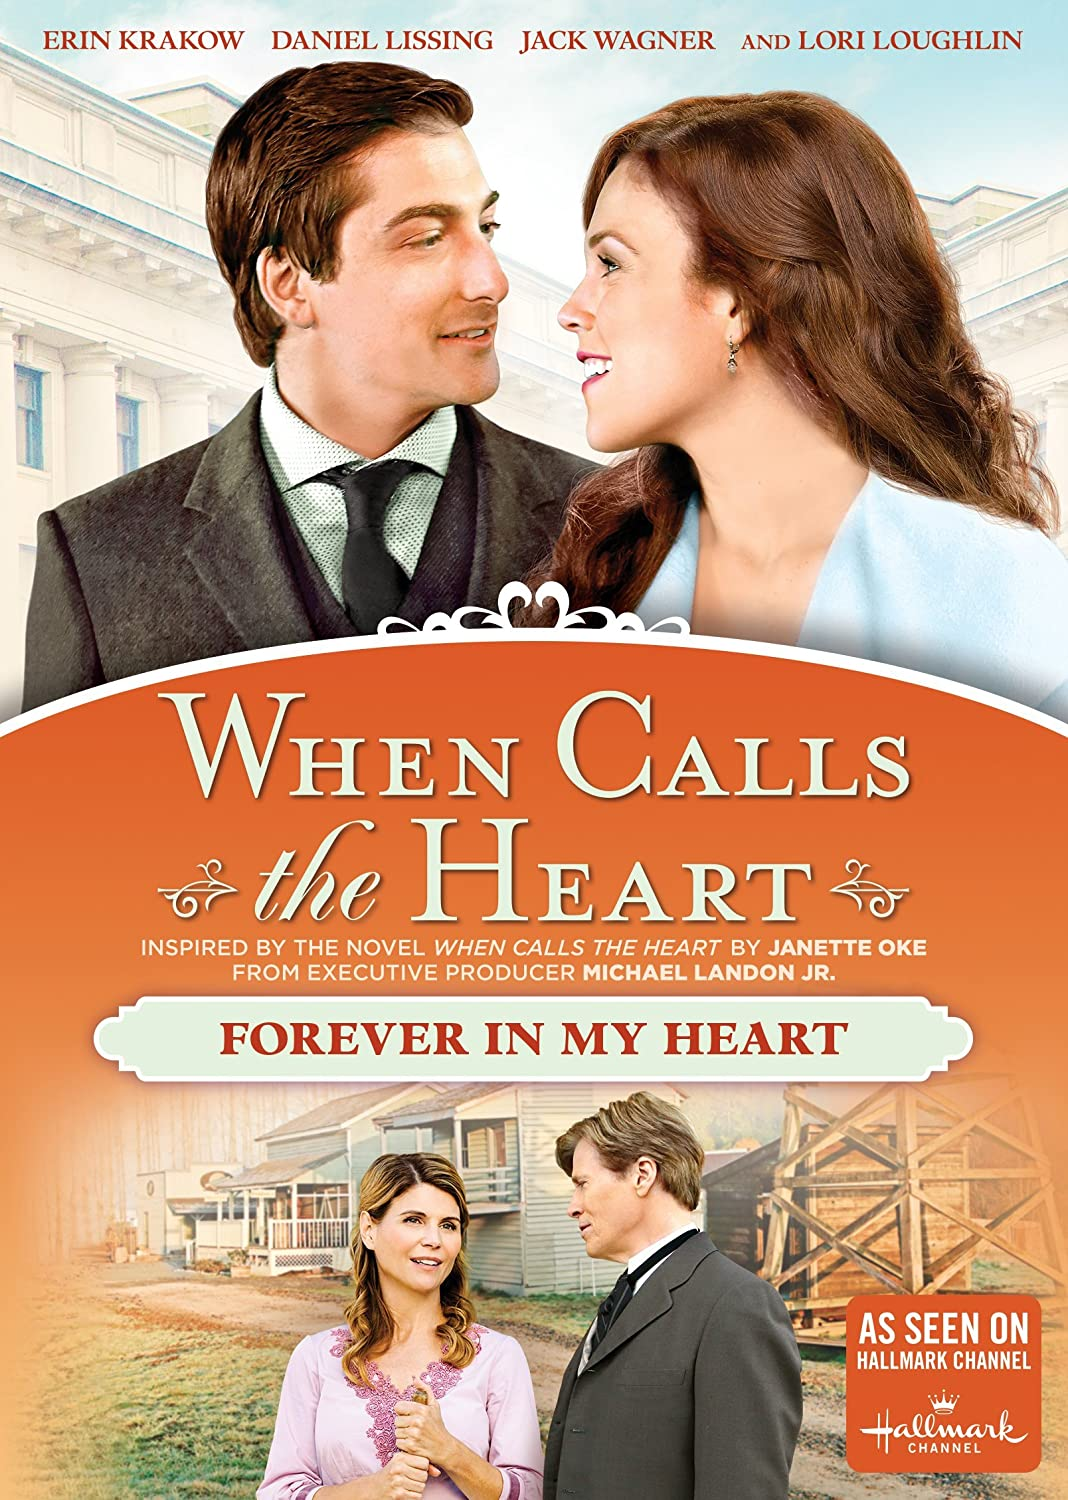 When Calls the Heart: Forever in my Heart - DVD Image